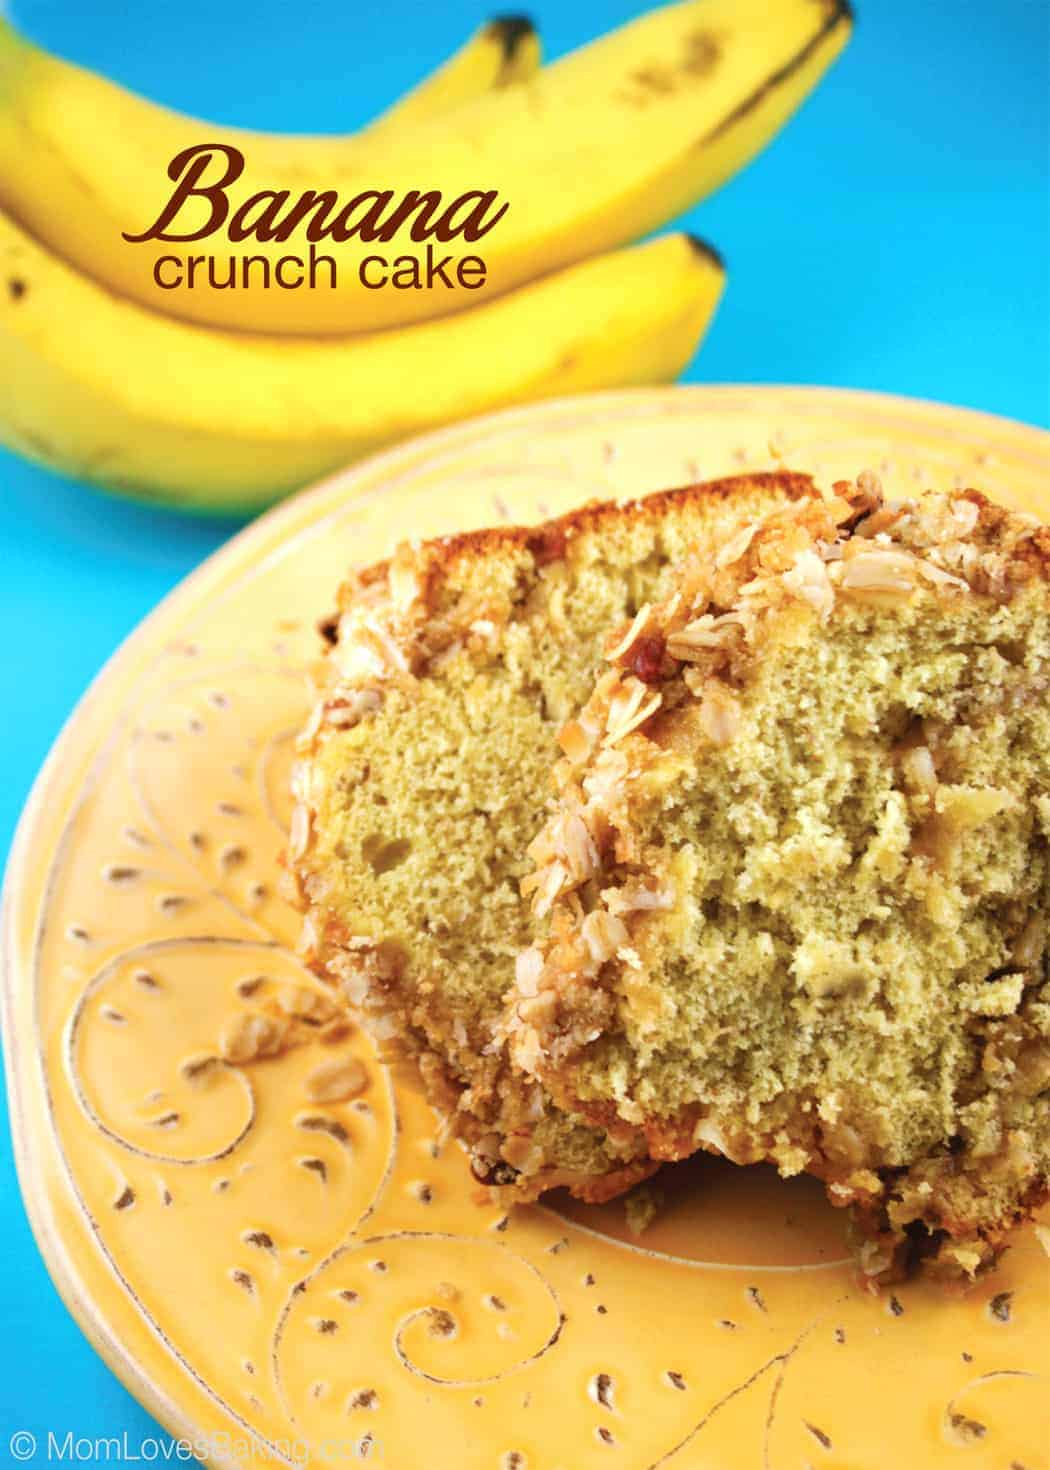 How Can I Make Banana Cake